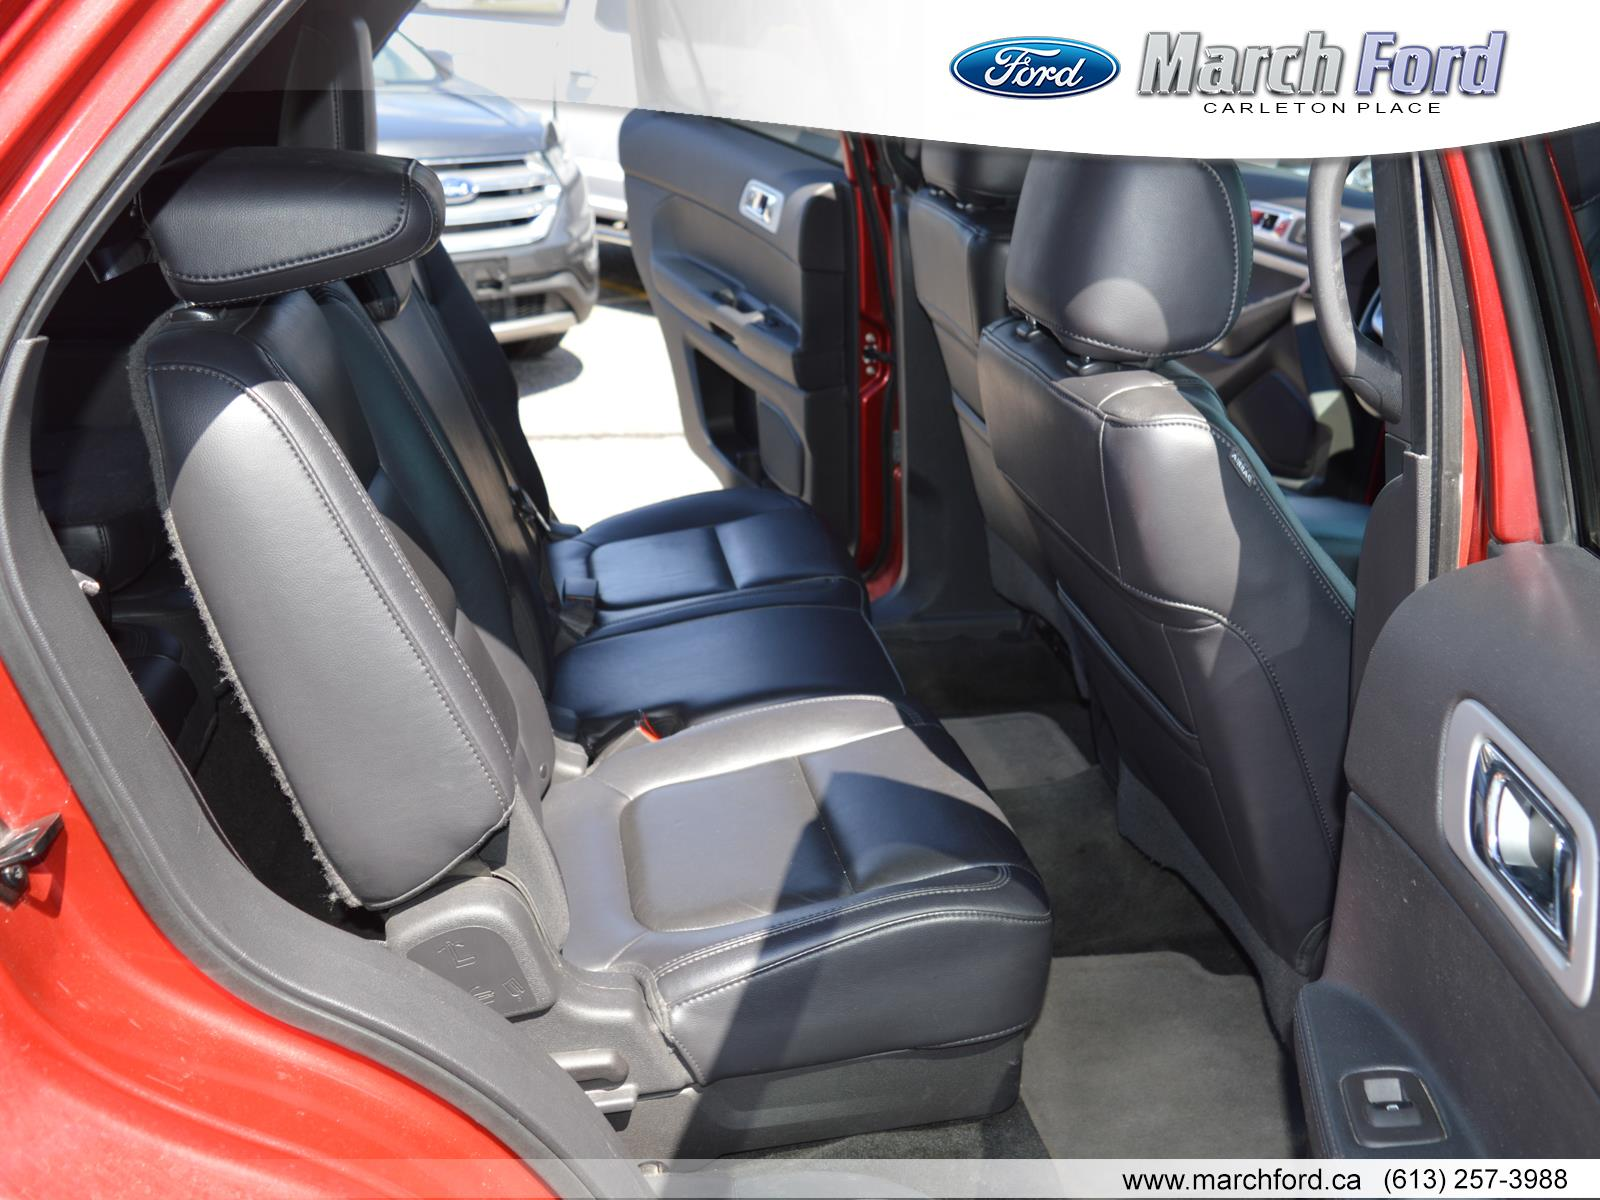 2012 ford explorer leather